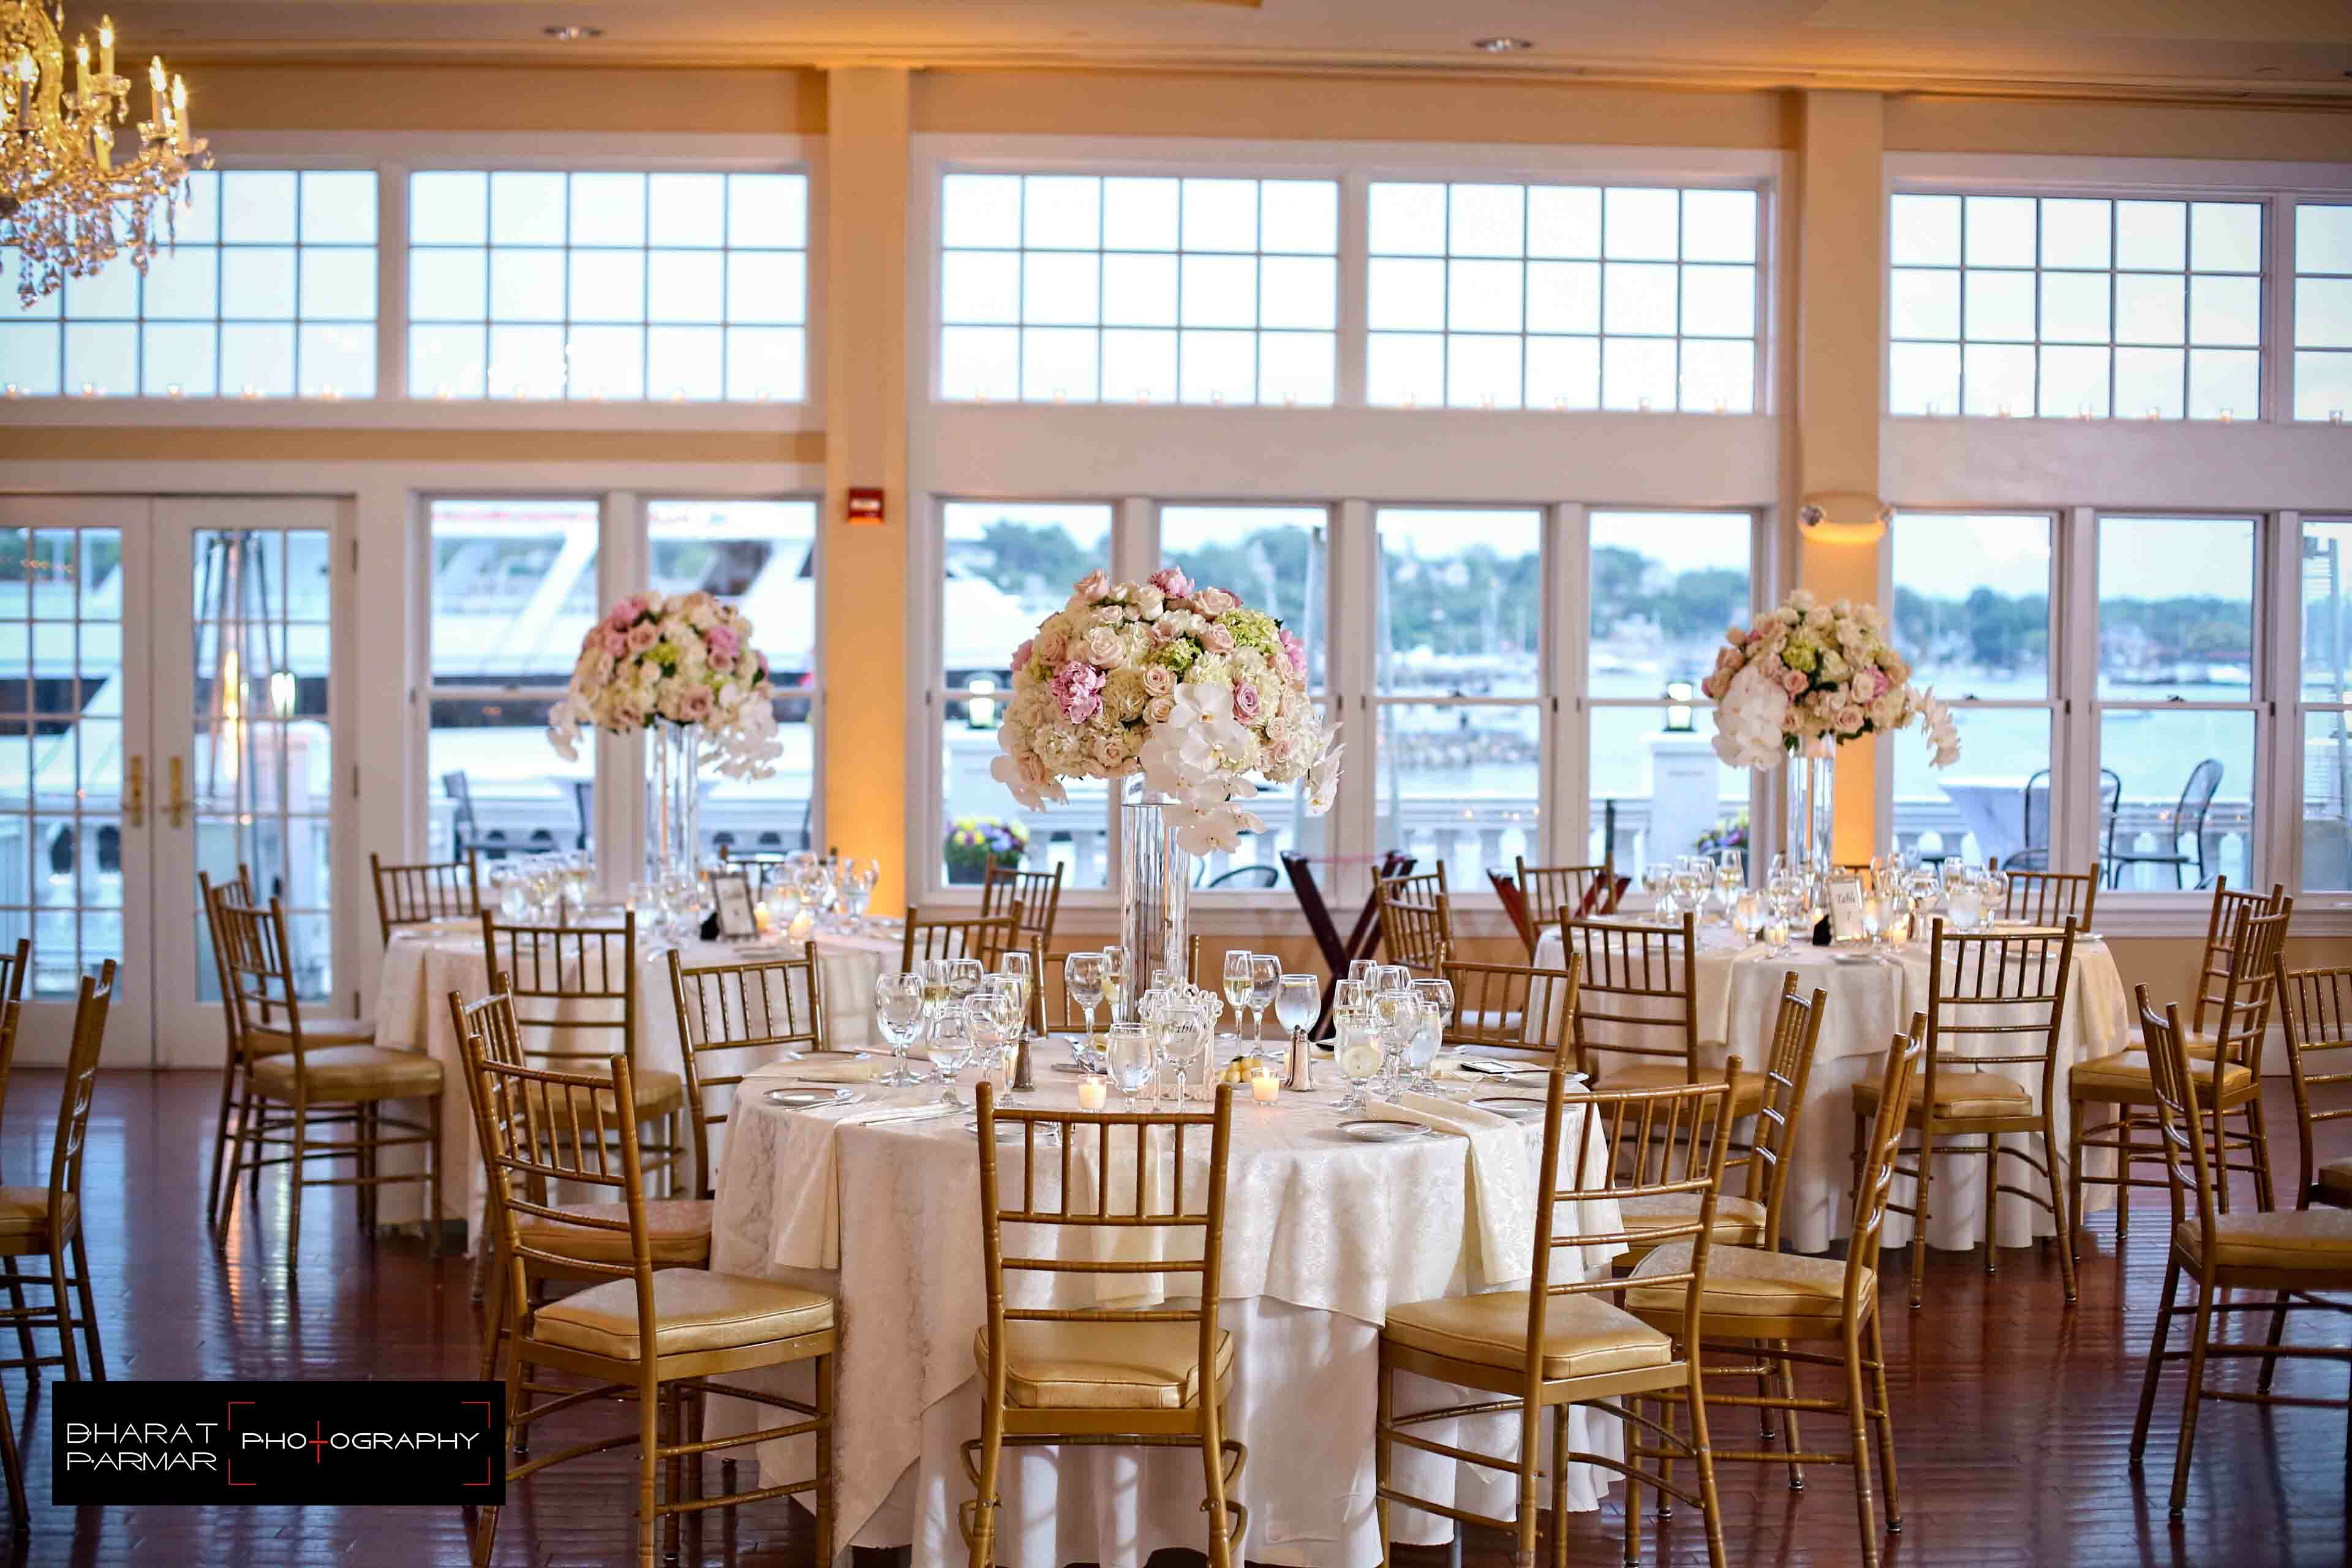 Wedding Reception Venues in Boston, MA - The Knot